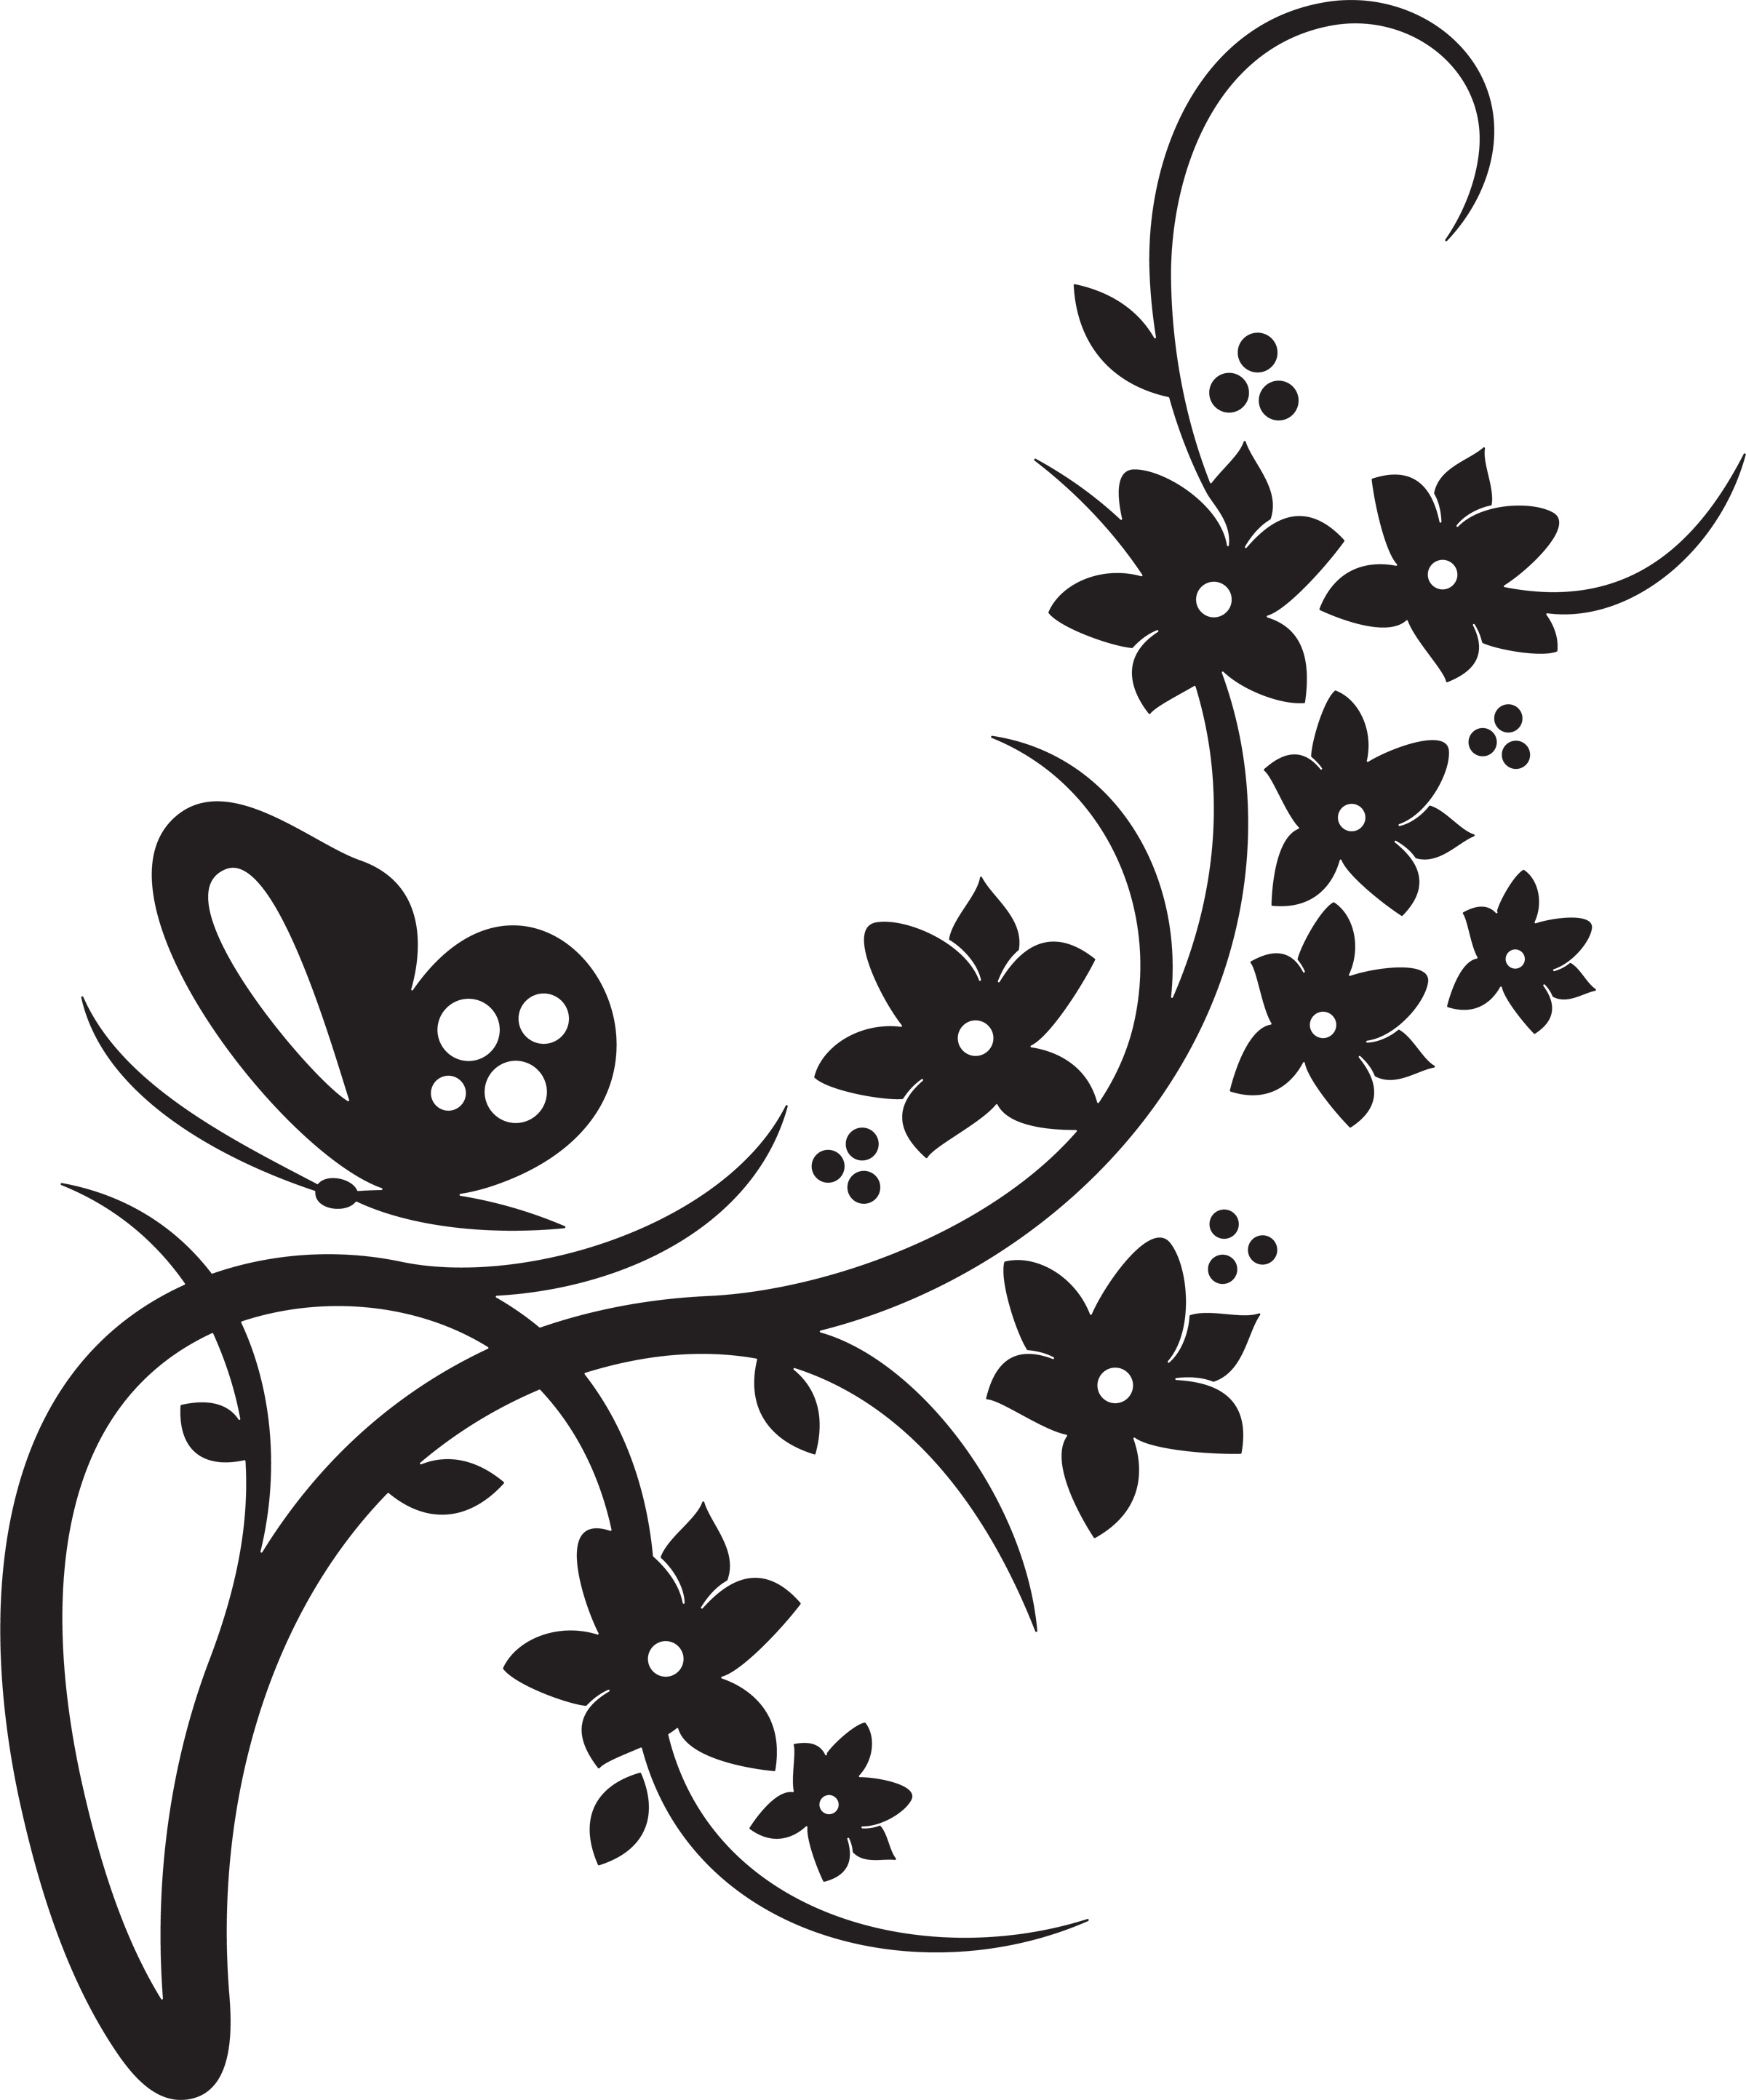 christian clipart free black and white - photo #20